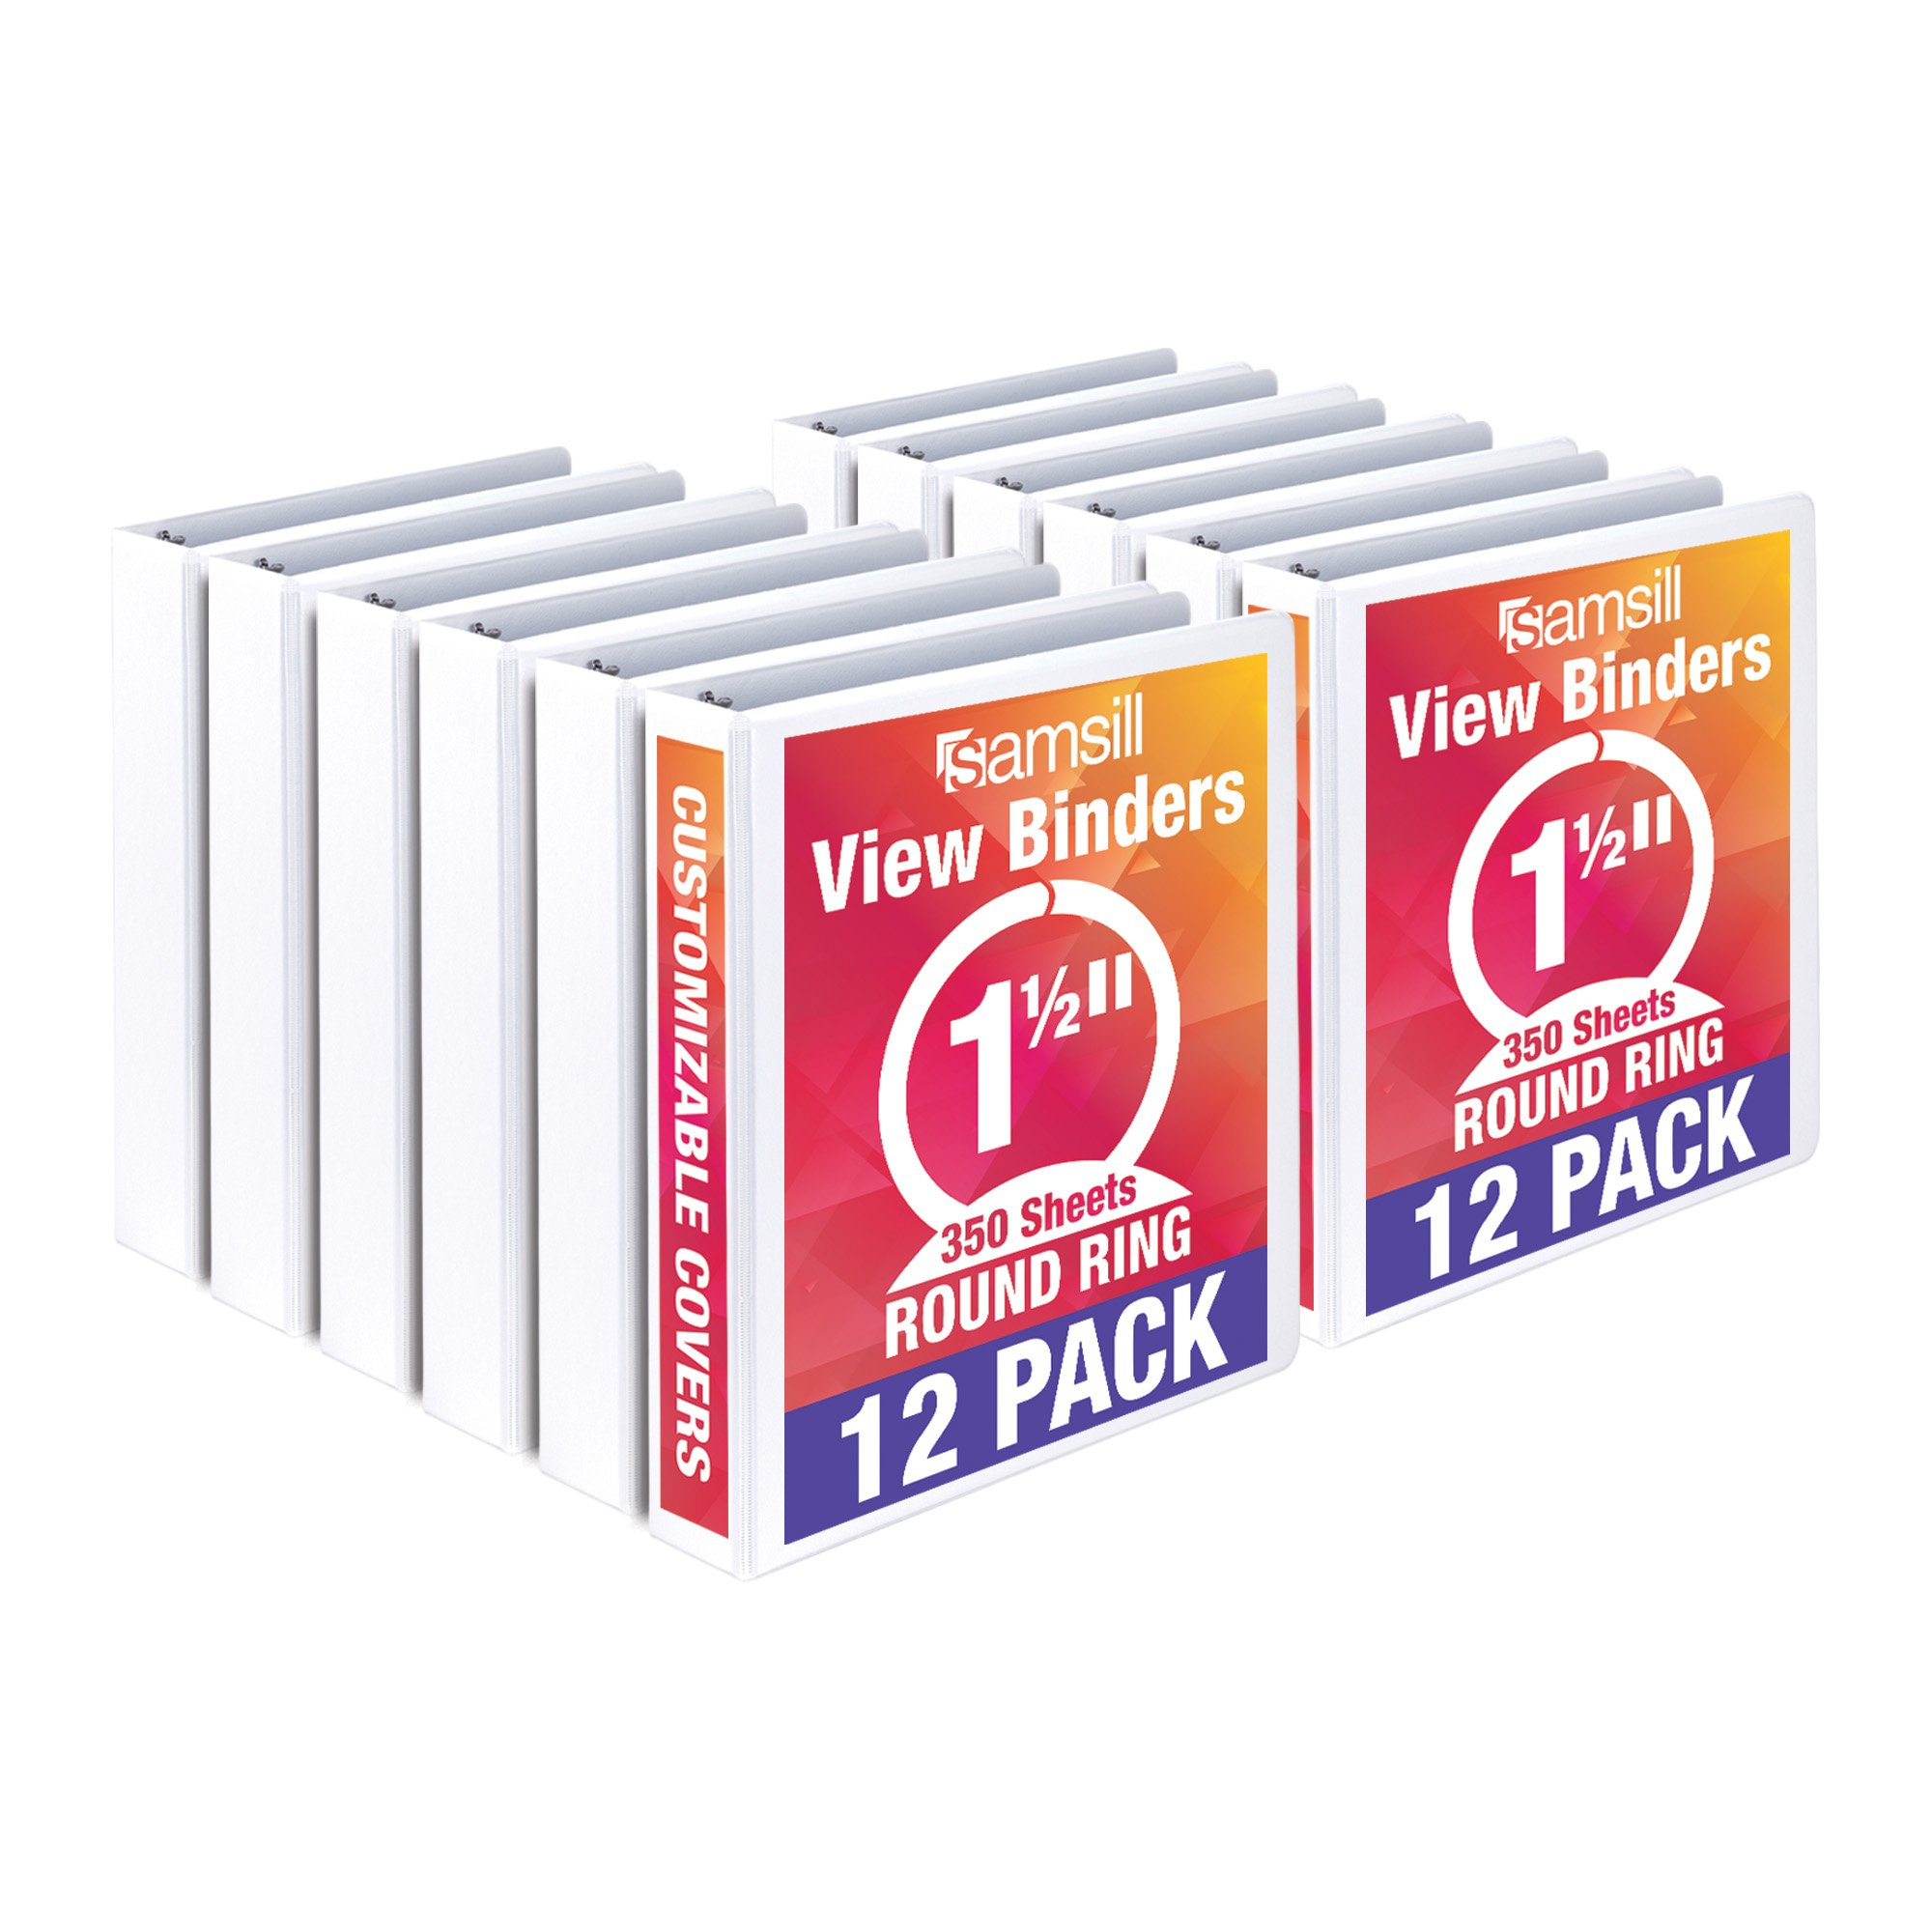 Samsill Economy 3 Ring View Binder, 1.5 Inch Round Ring – Holds 350 Sheets, PVC-Free / Non-Stick Customizable  Cover, White, 12 Pack